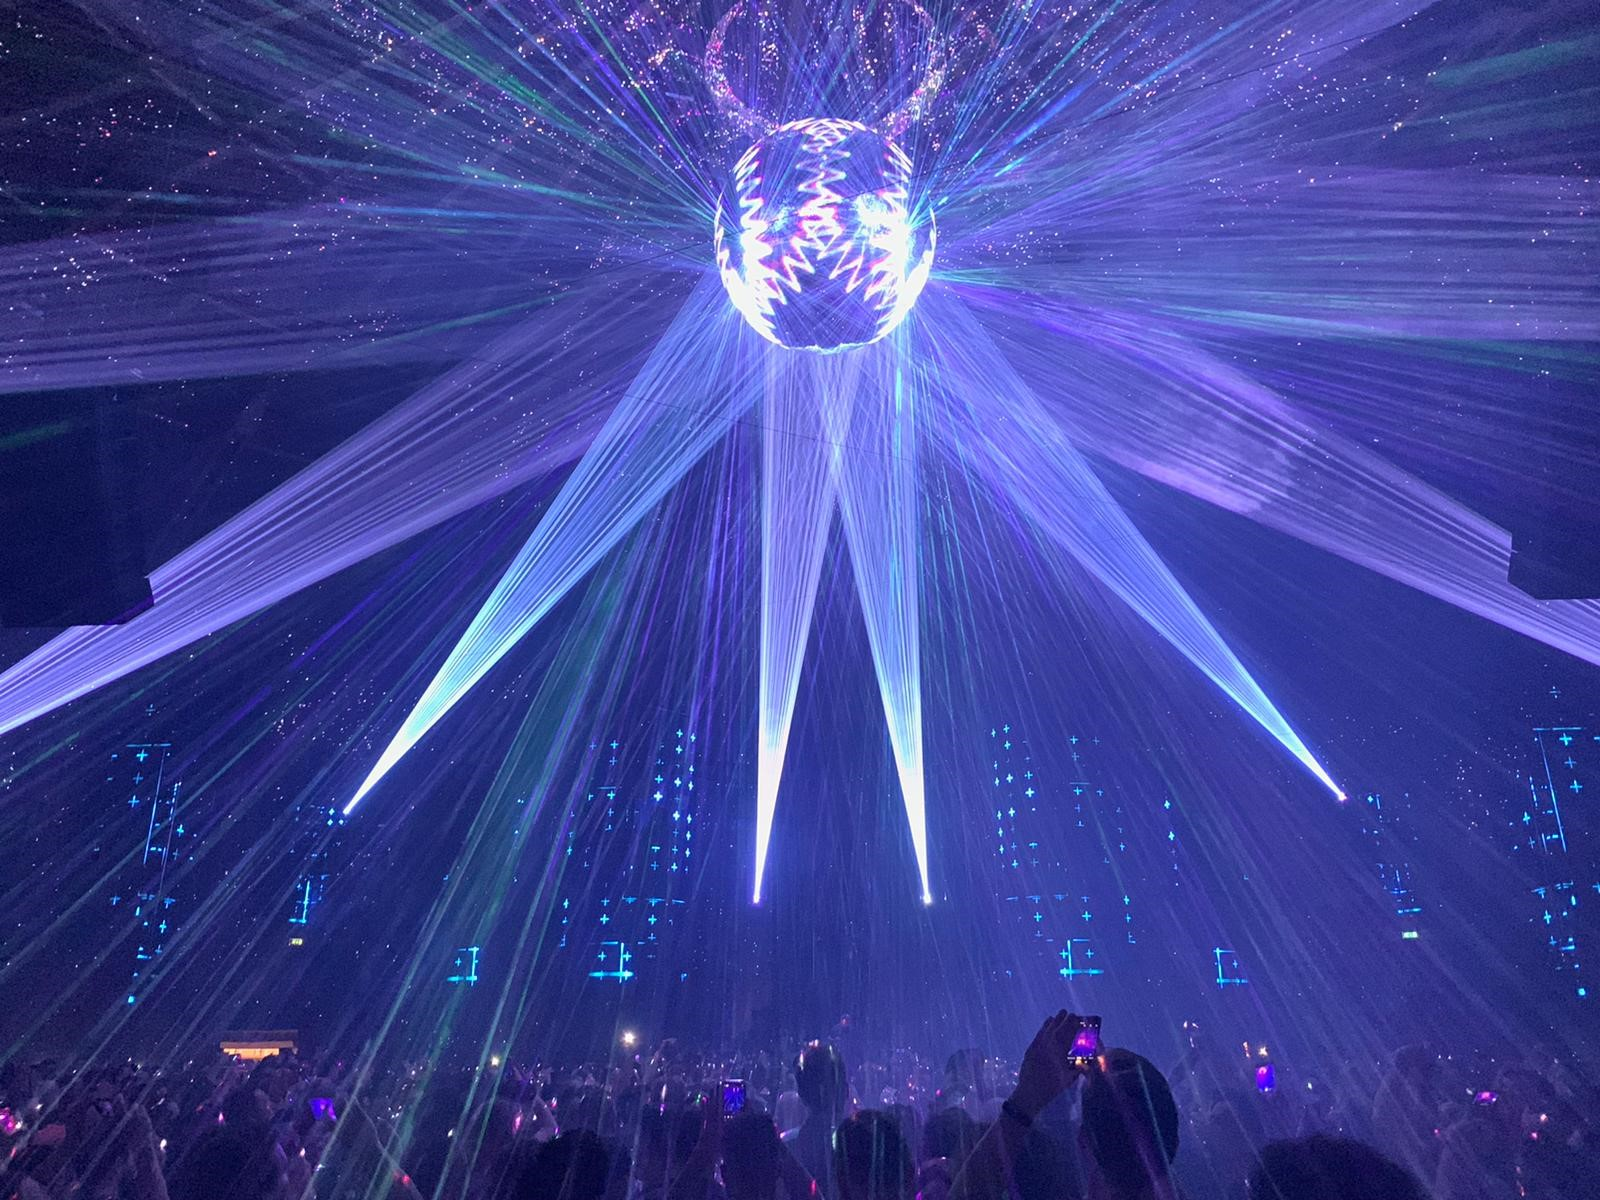 Lasers in Awakenings